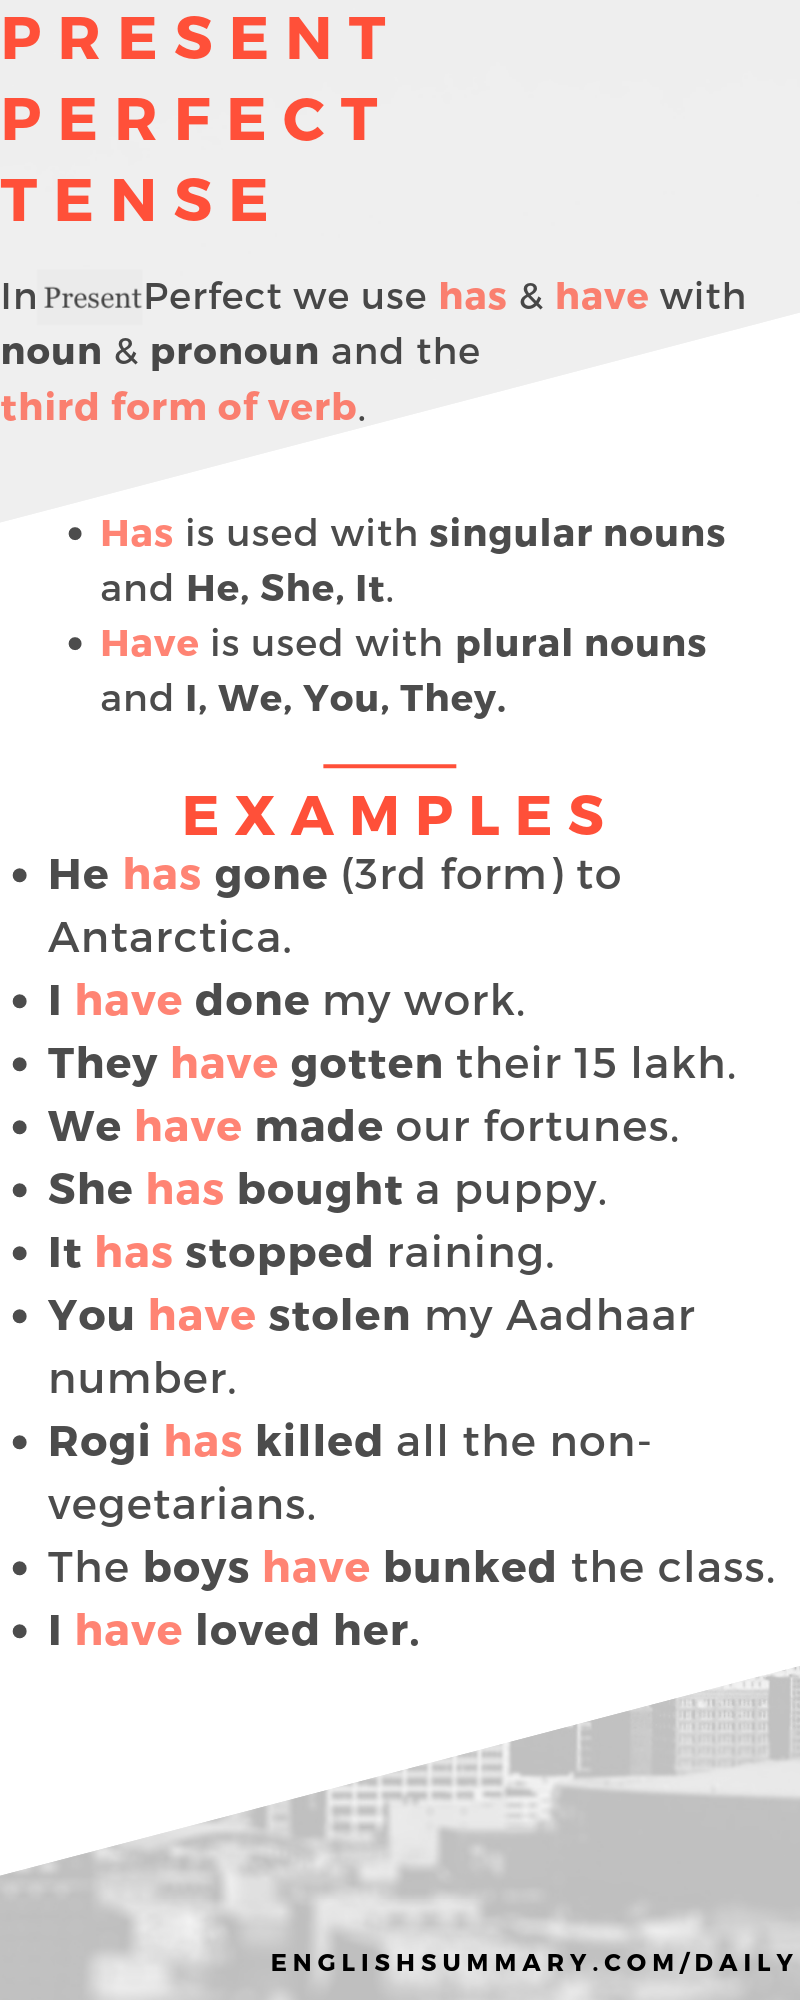 present perfect tense rules and examples | English Grammar